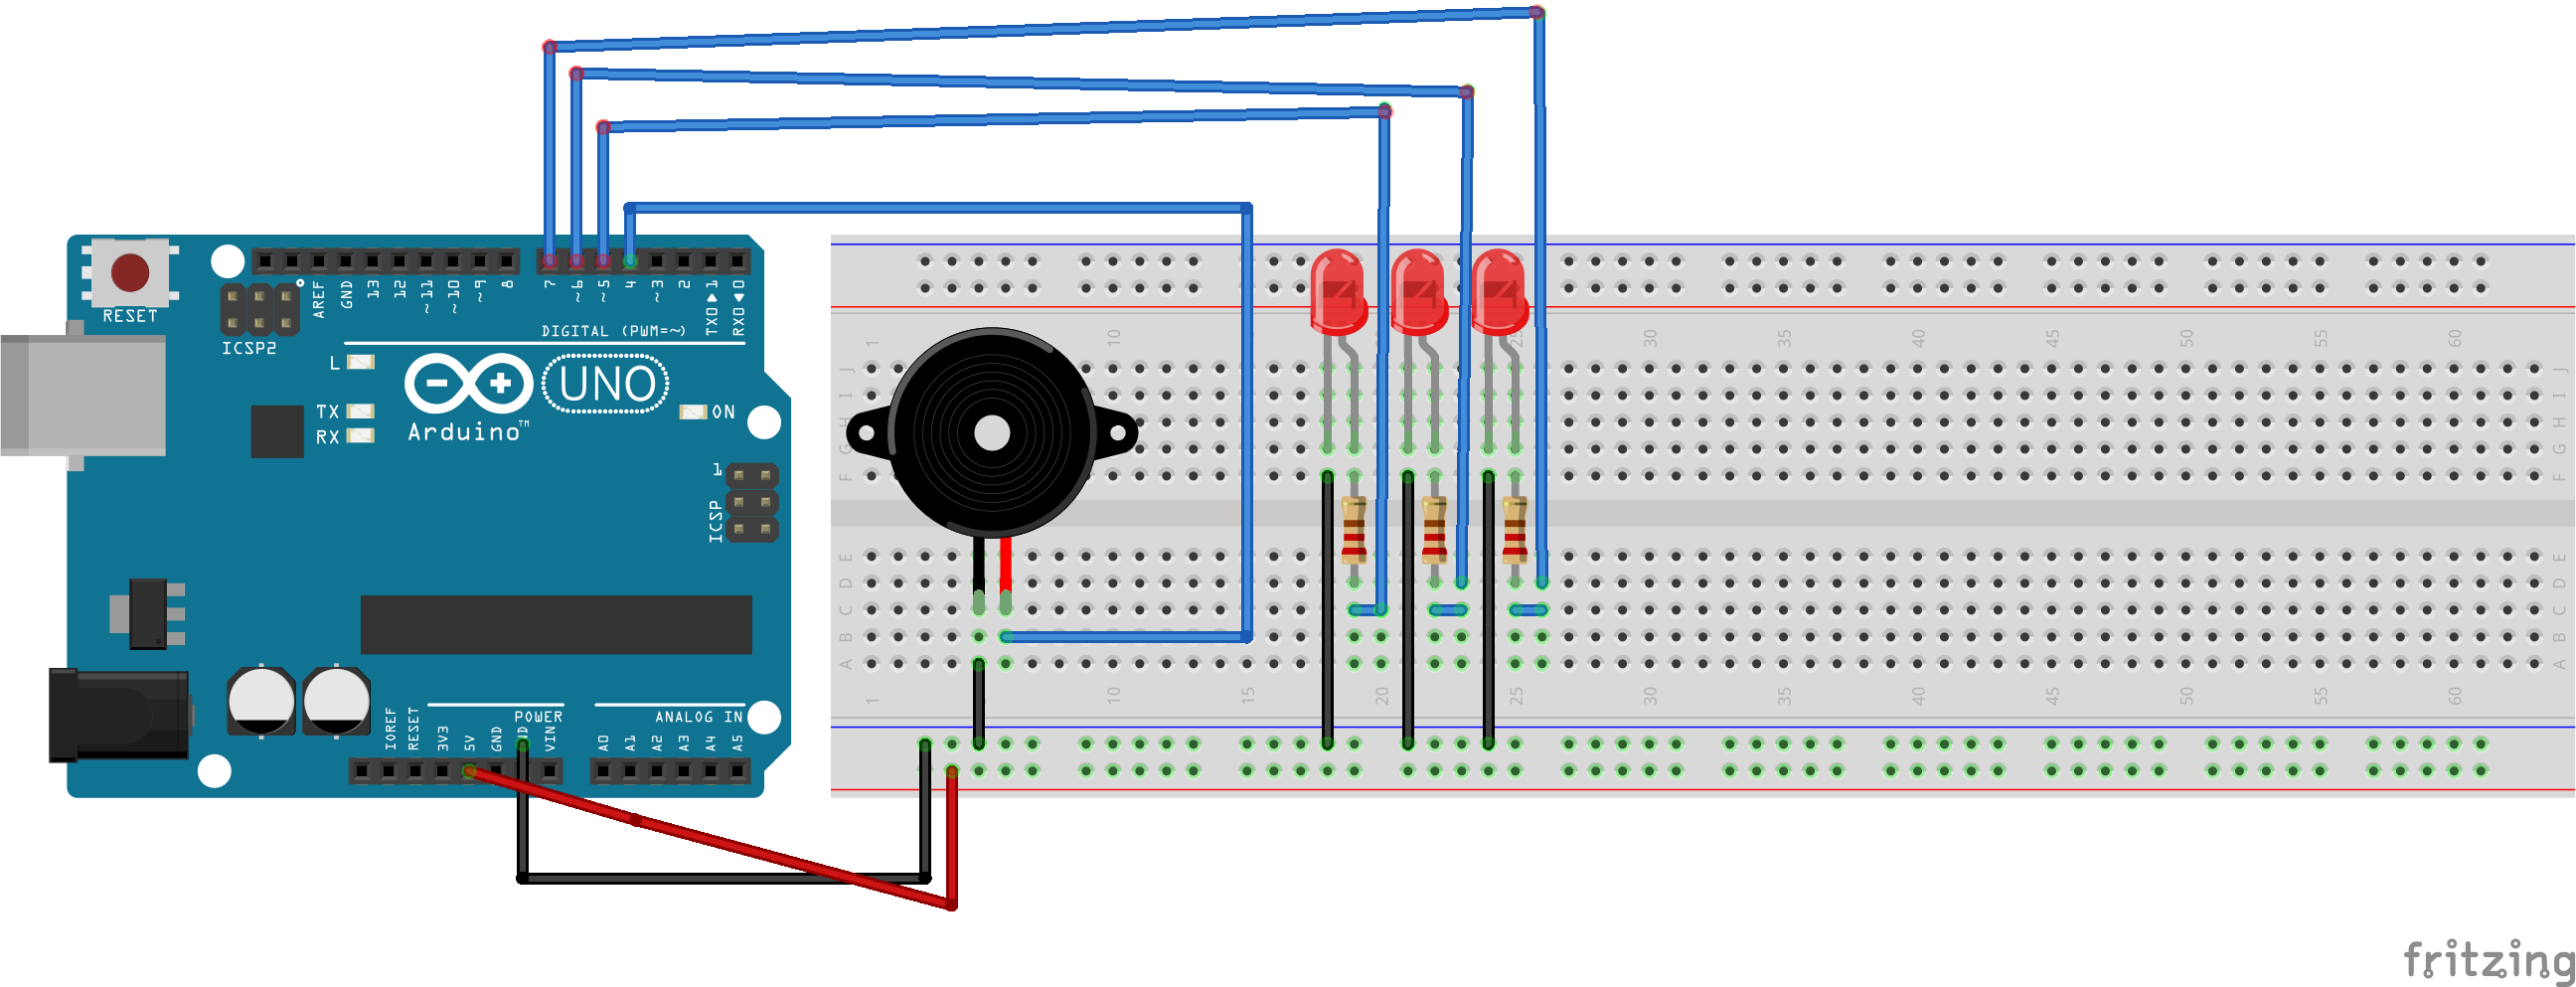 Picture of Add 3 LEDs to the Breadboard